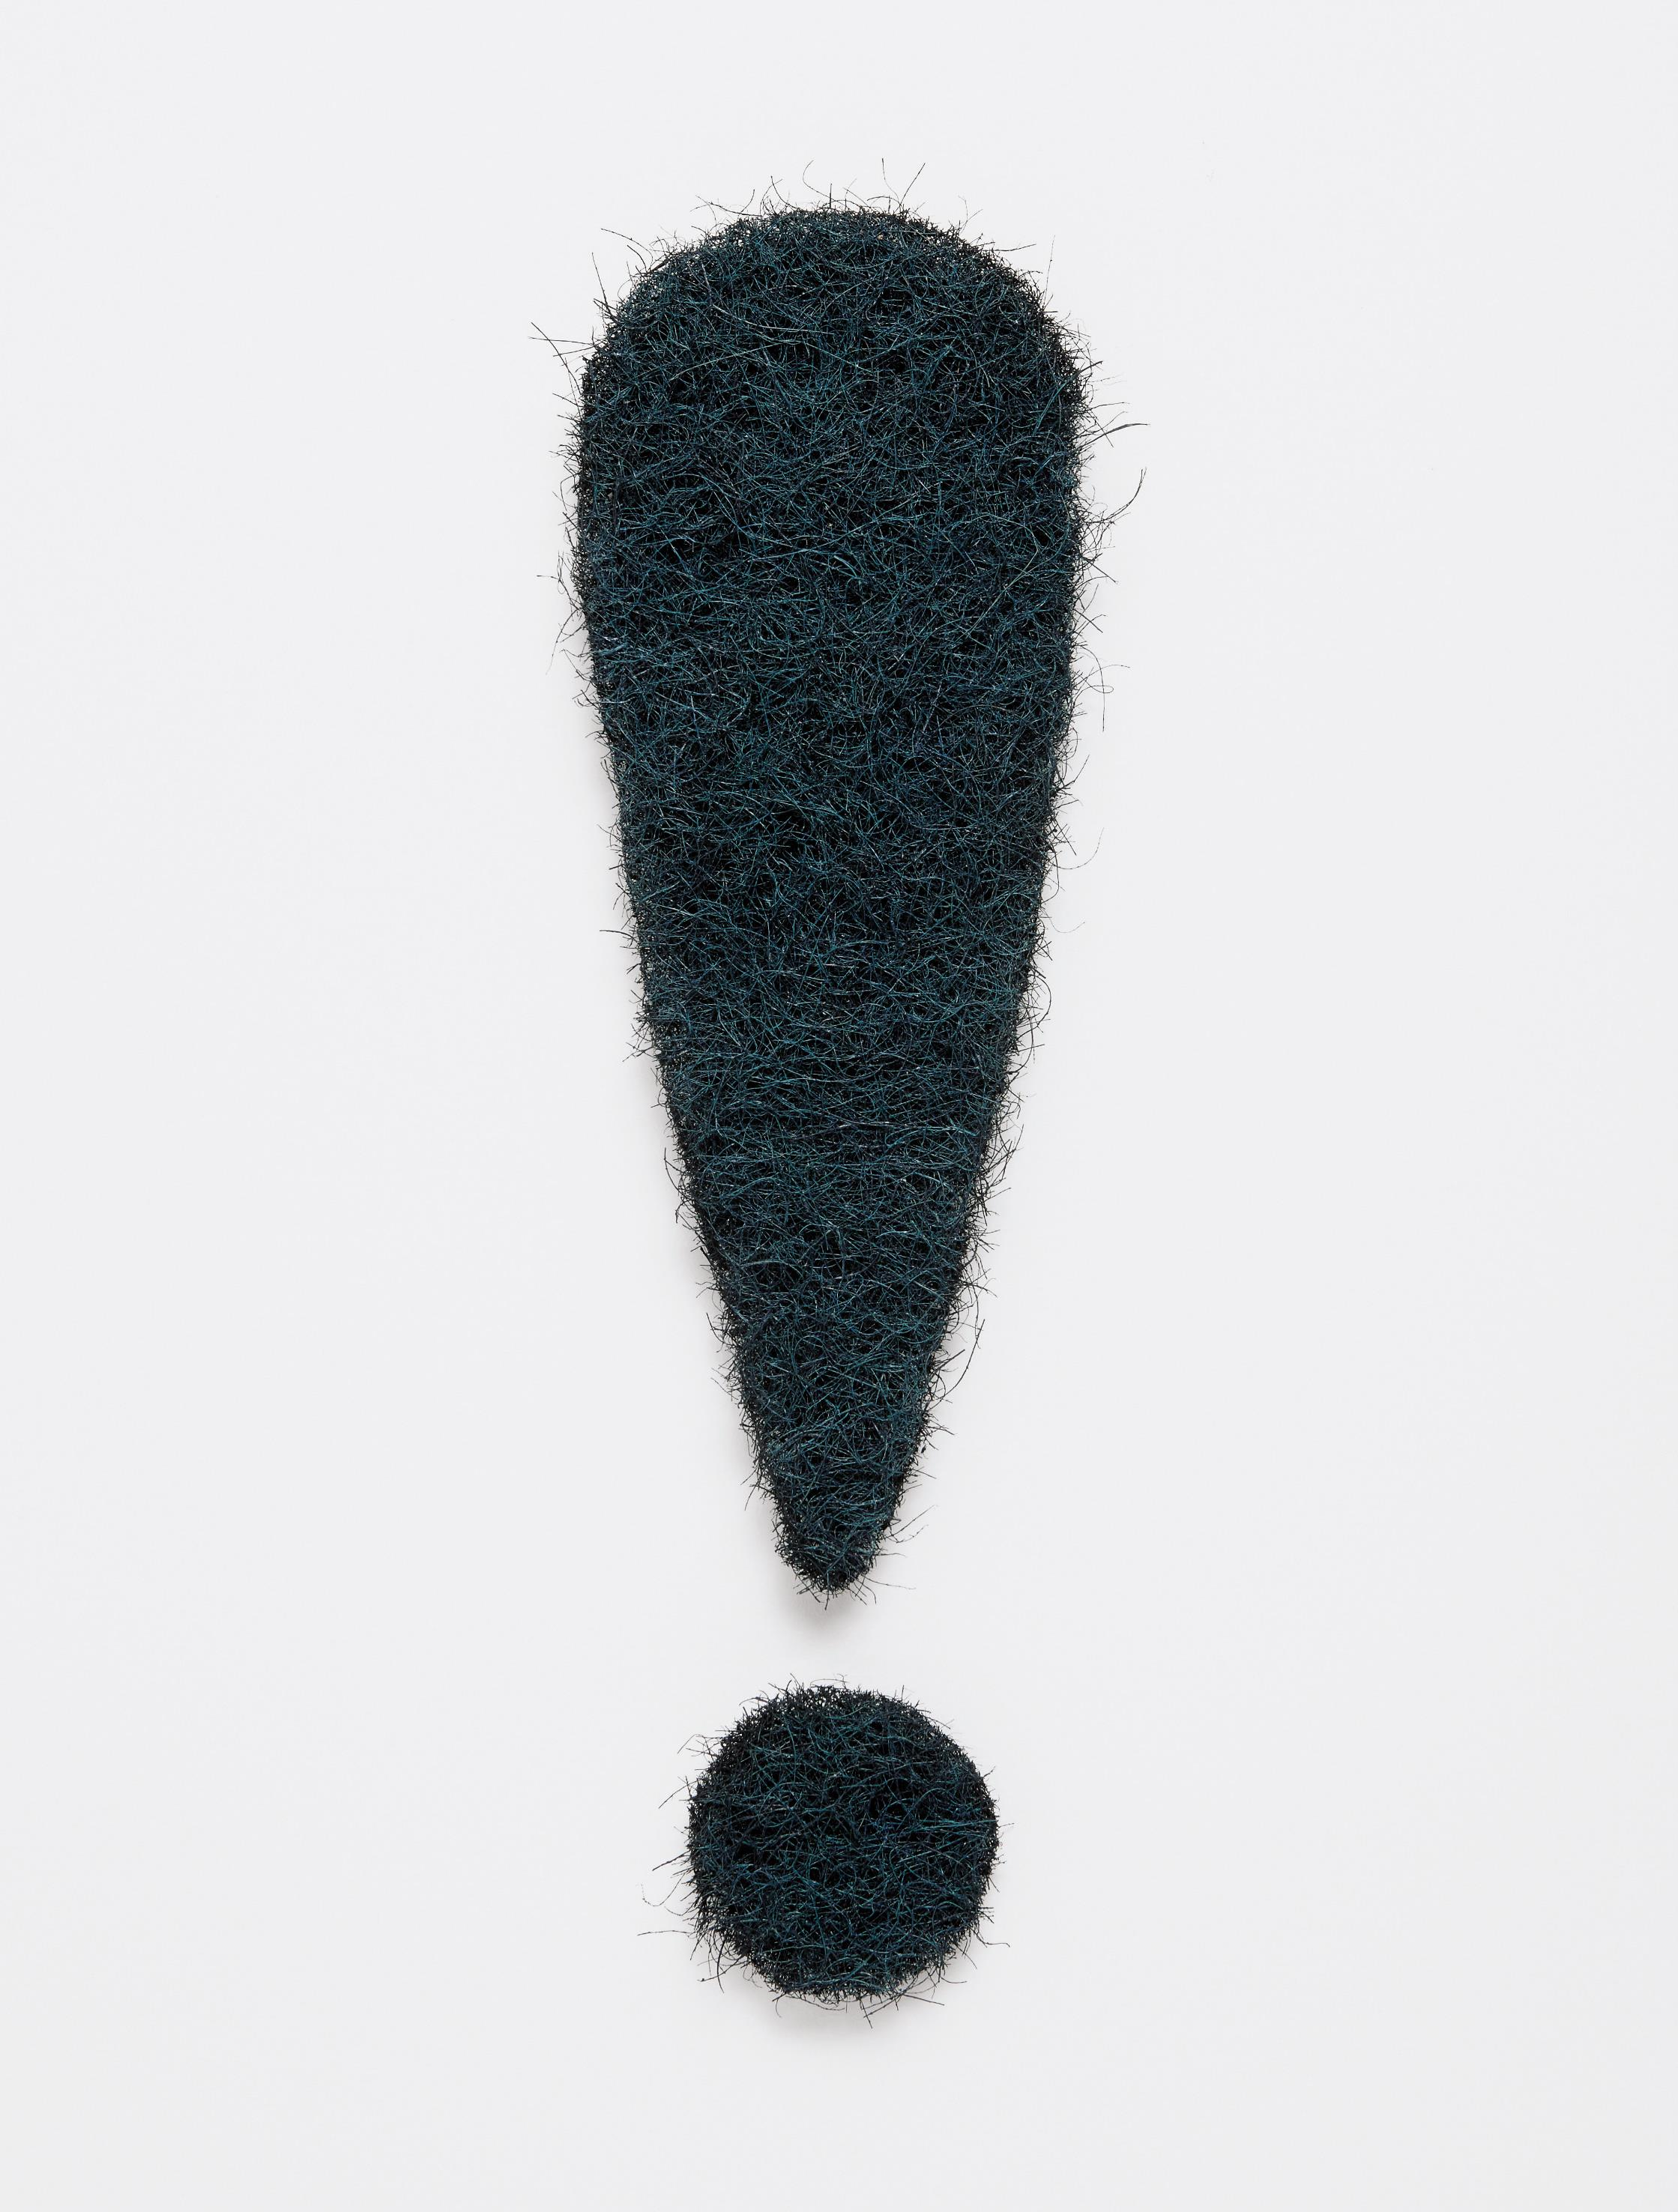 Richard Artschwager-Exclamation Point-2006